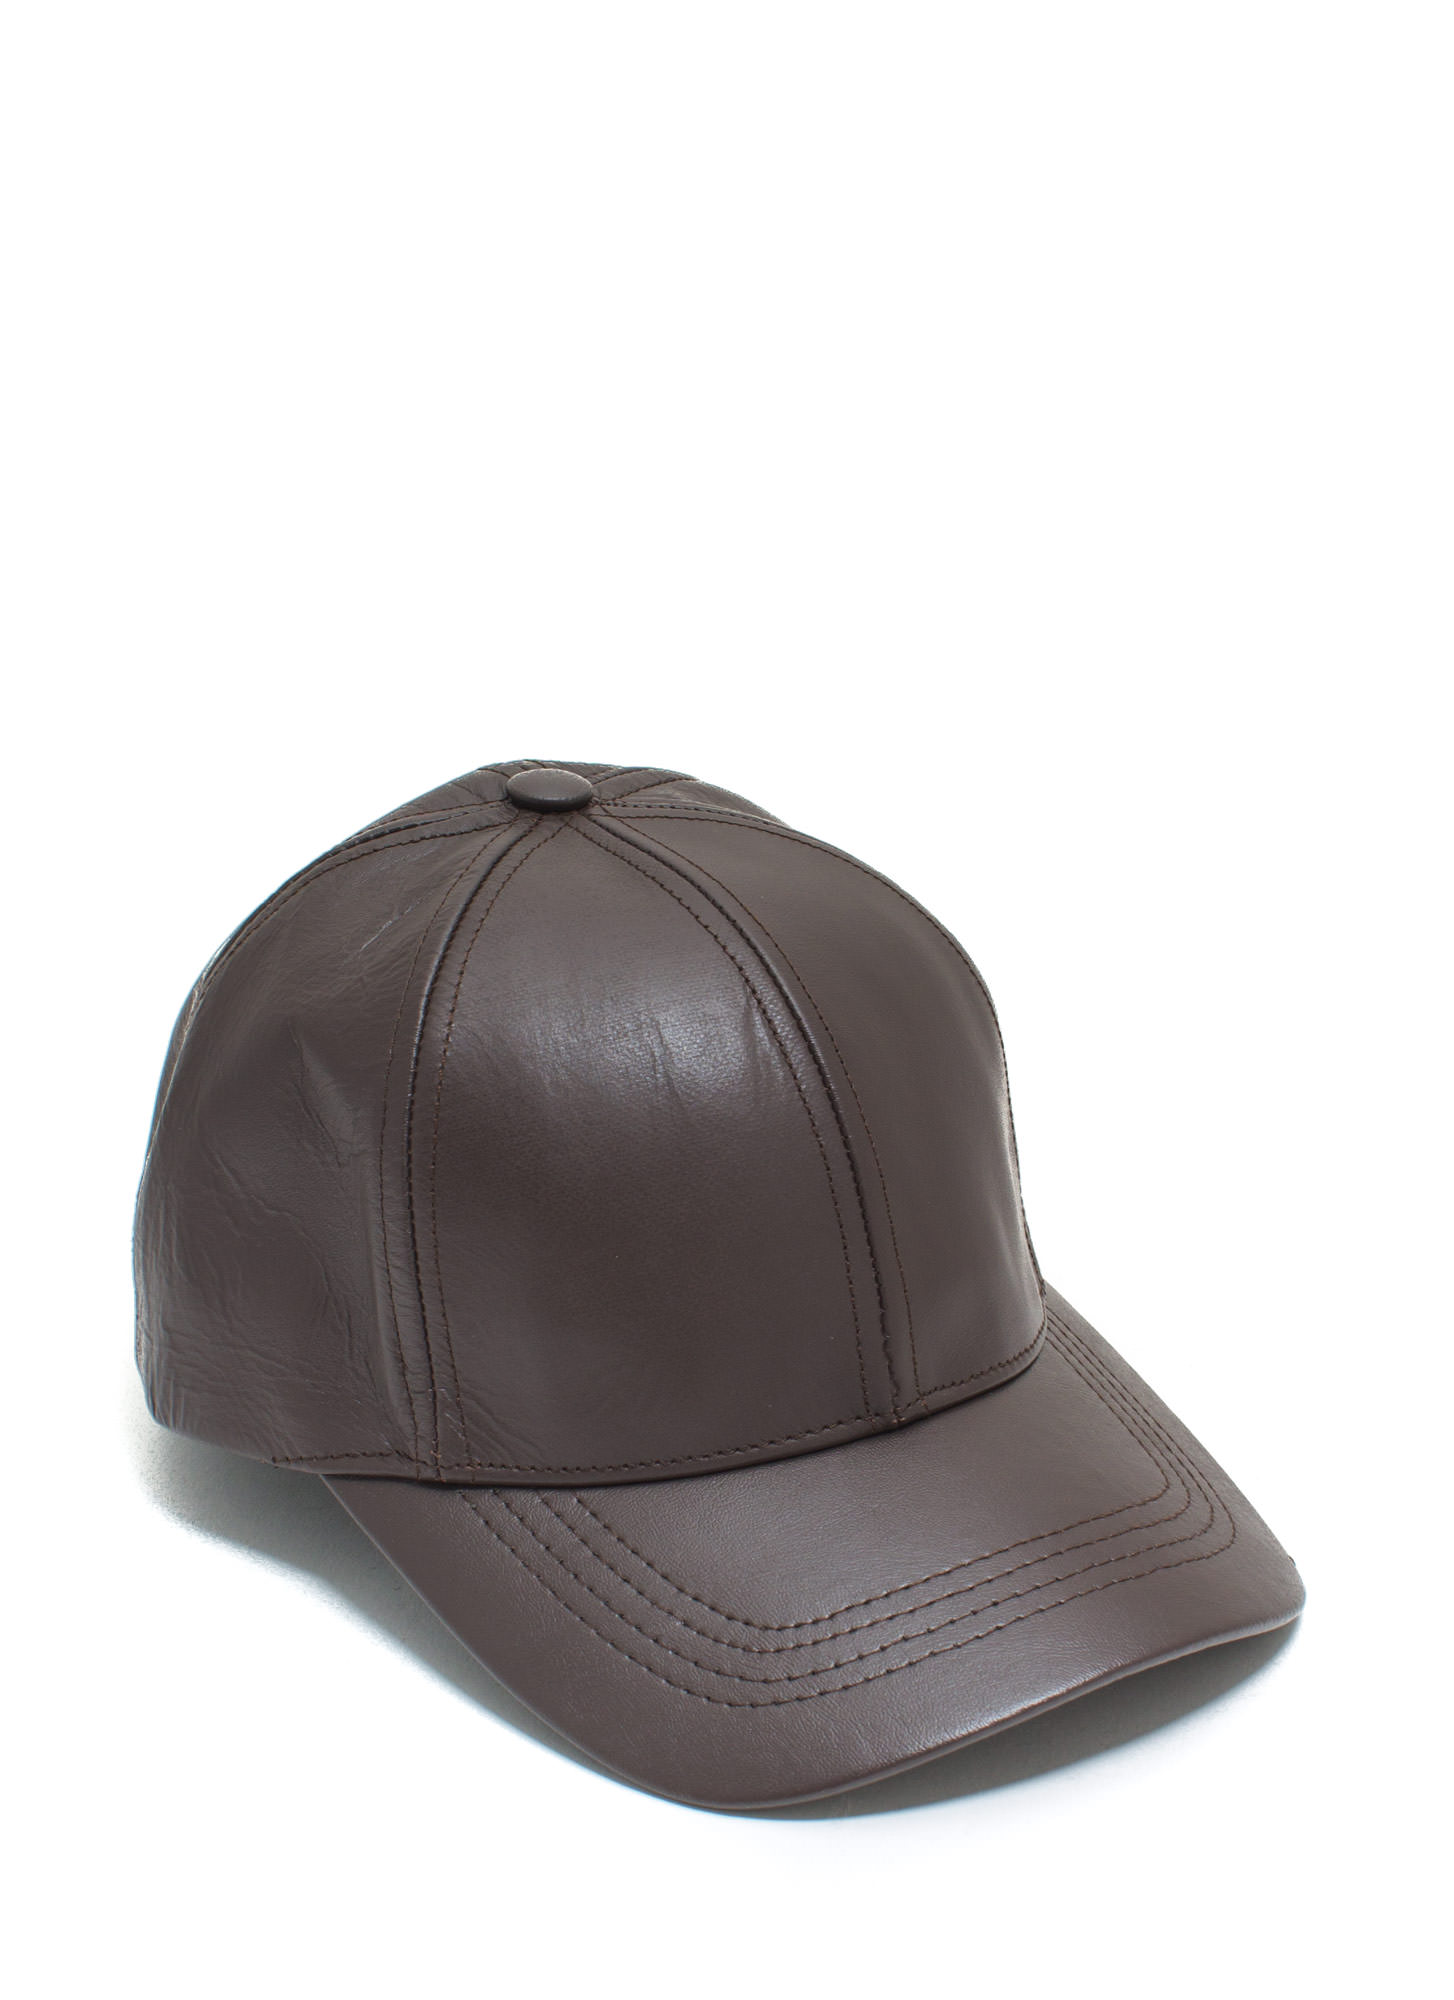 Leather Lady Baseball Cap BROWN